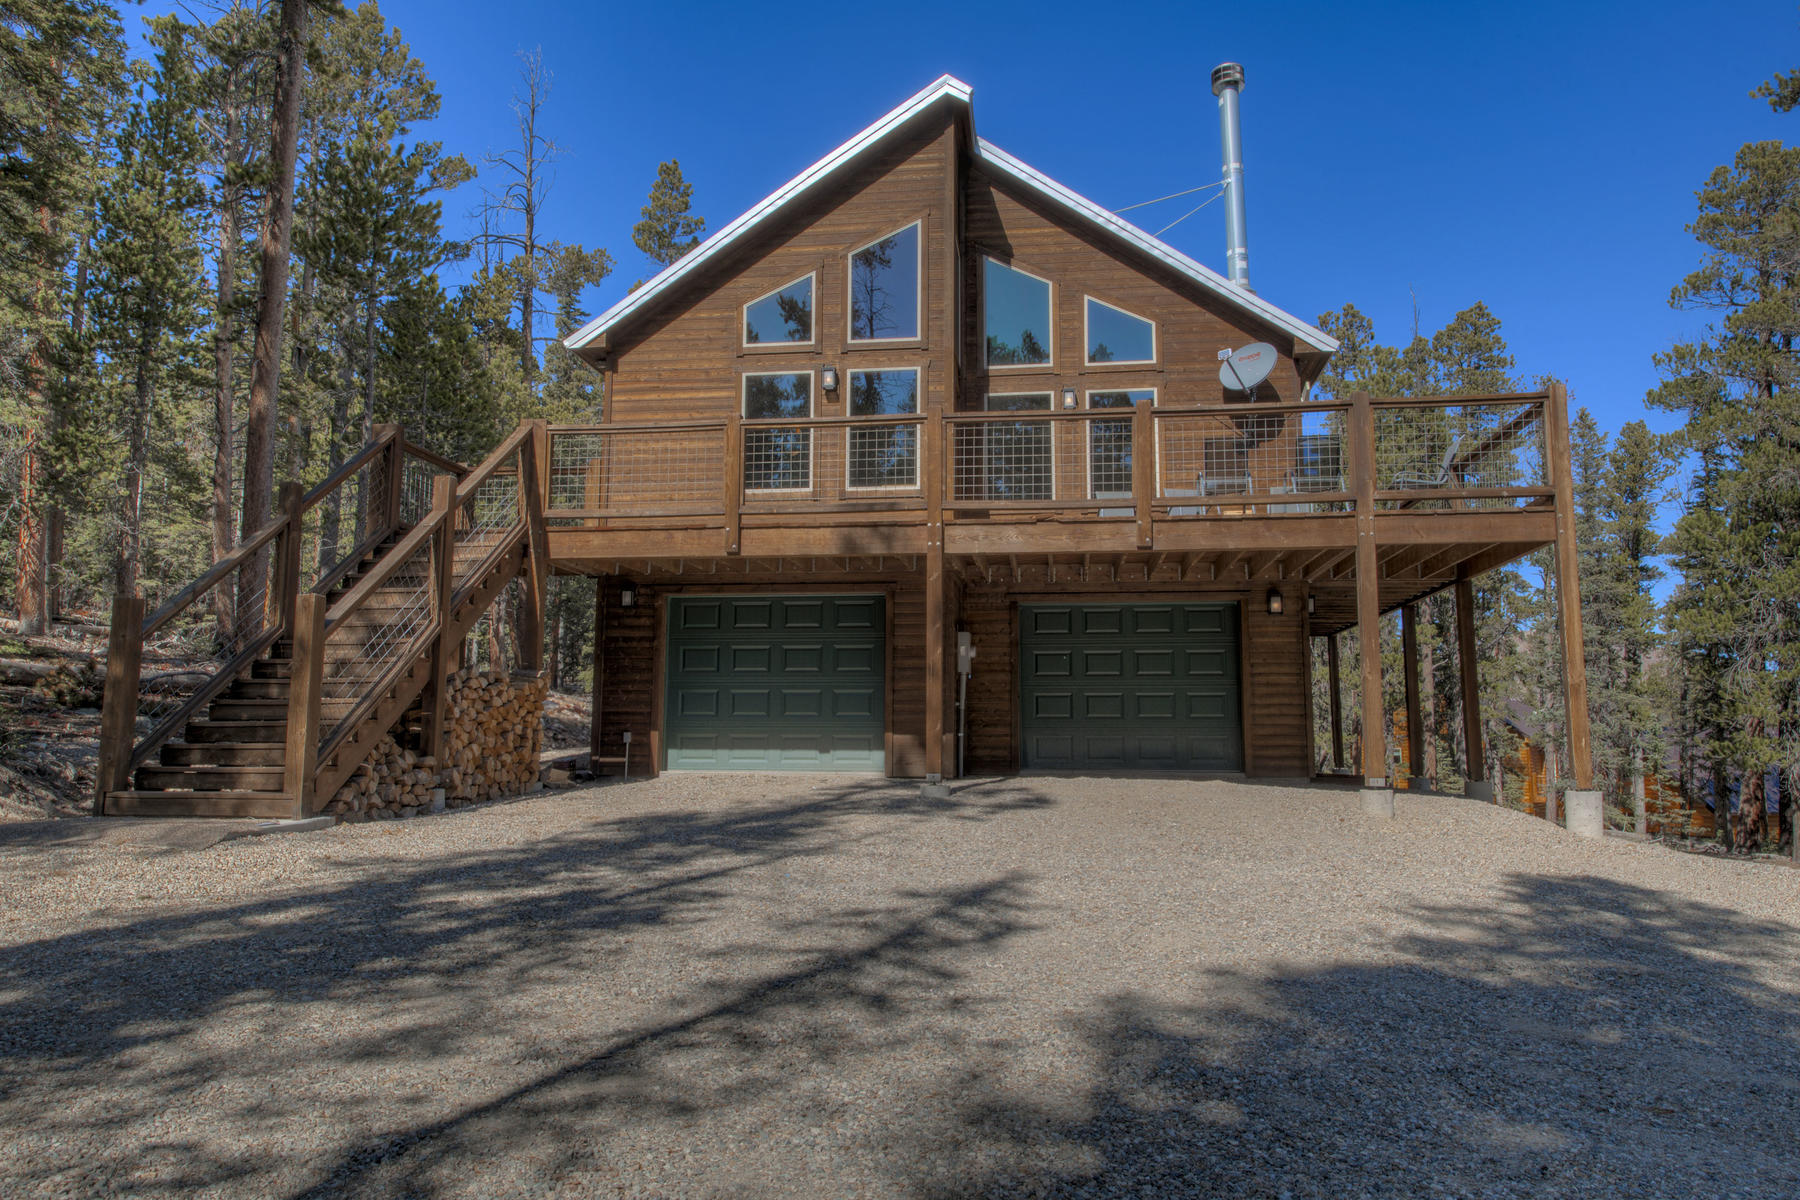 Single Family Homes for Active at Mountain Modern Home 625 Bobcat Lane Fairplay, Colorado 80440 United States